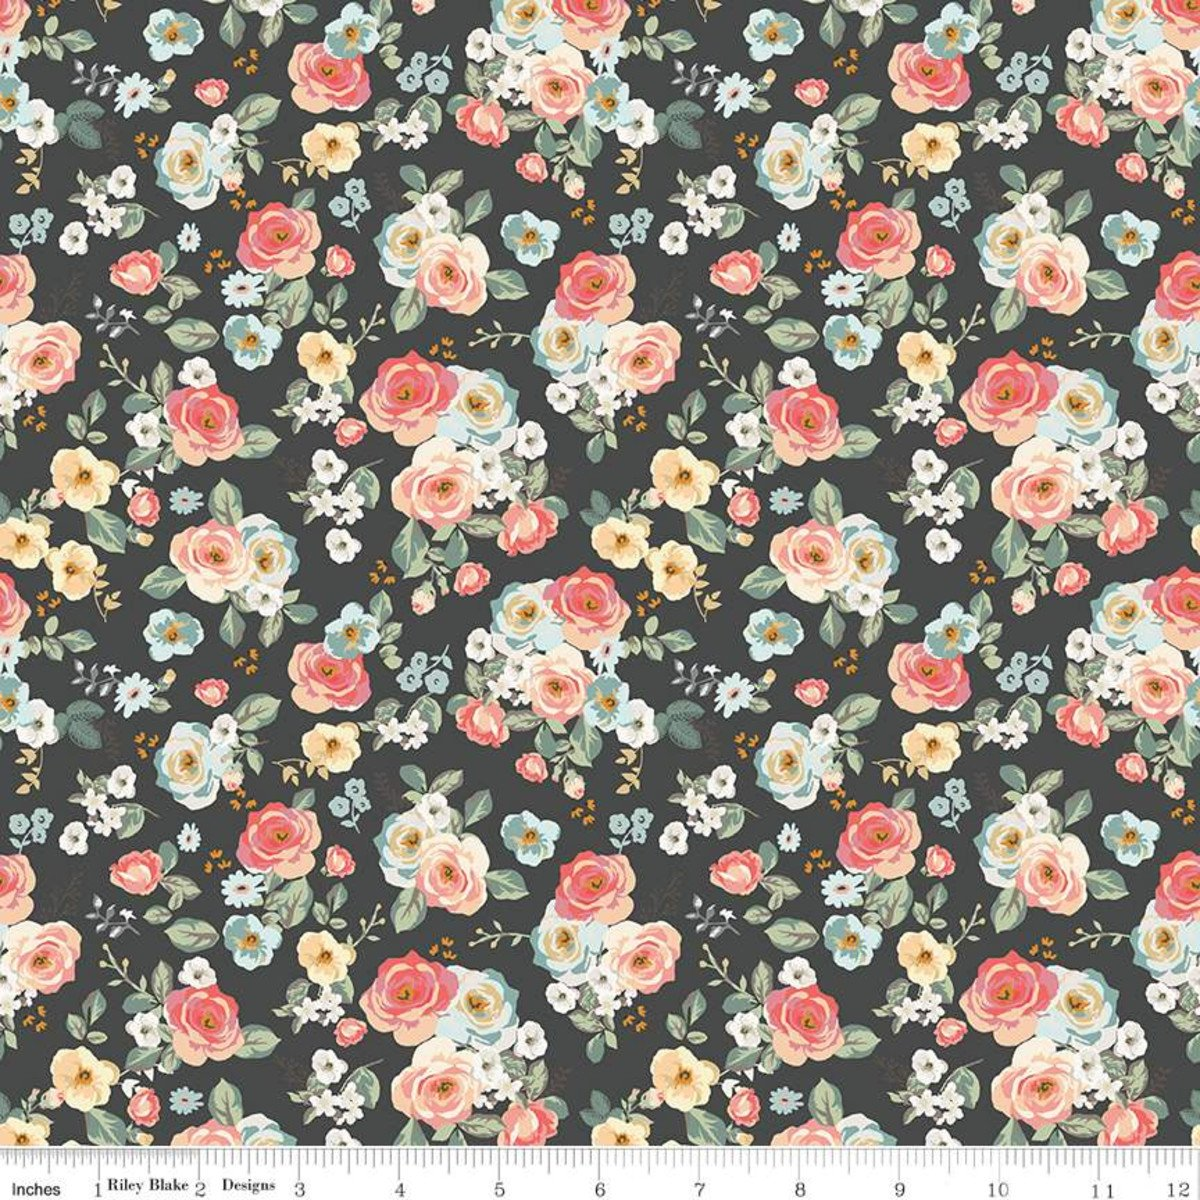 Gingham Gardens - Charcoal Floral - By My Mind's Eye For Riley Blake Fabrics